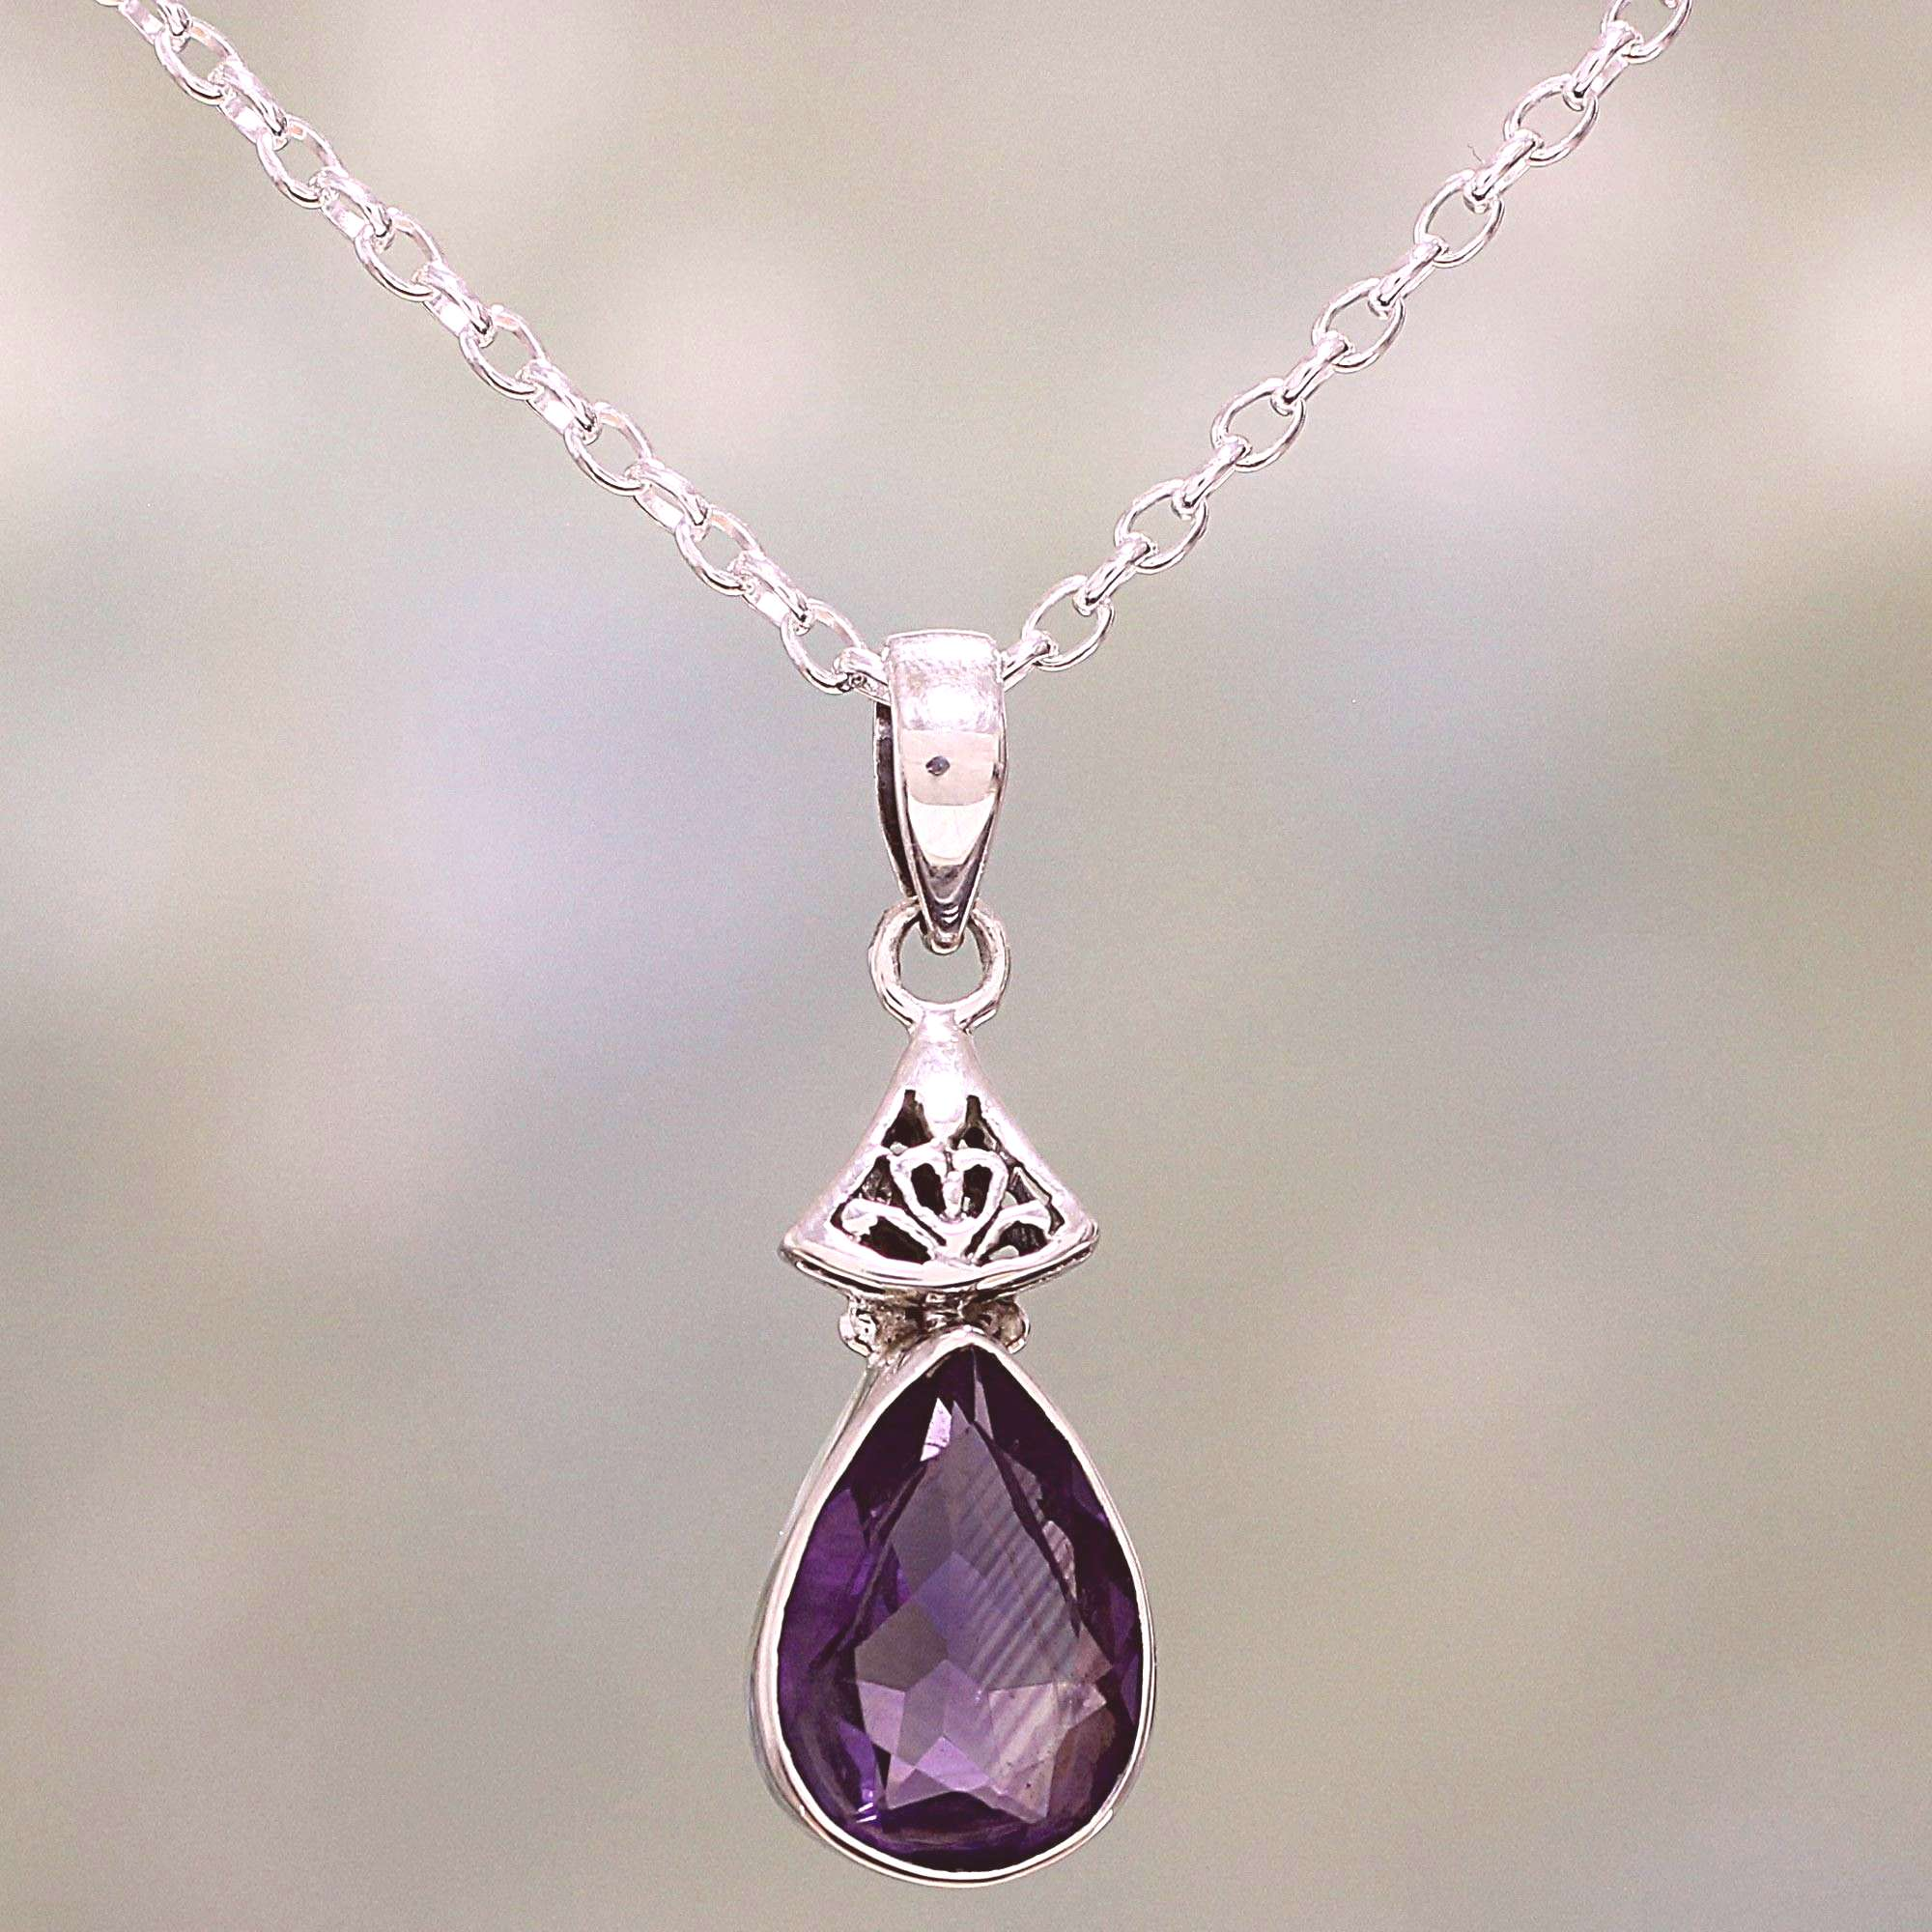 UNICEF Market | Faceted Amethyst and Sterling Silver Necklace from India - Lavender Drop